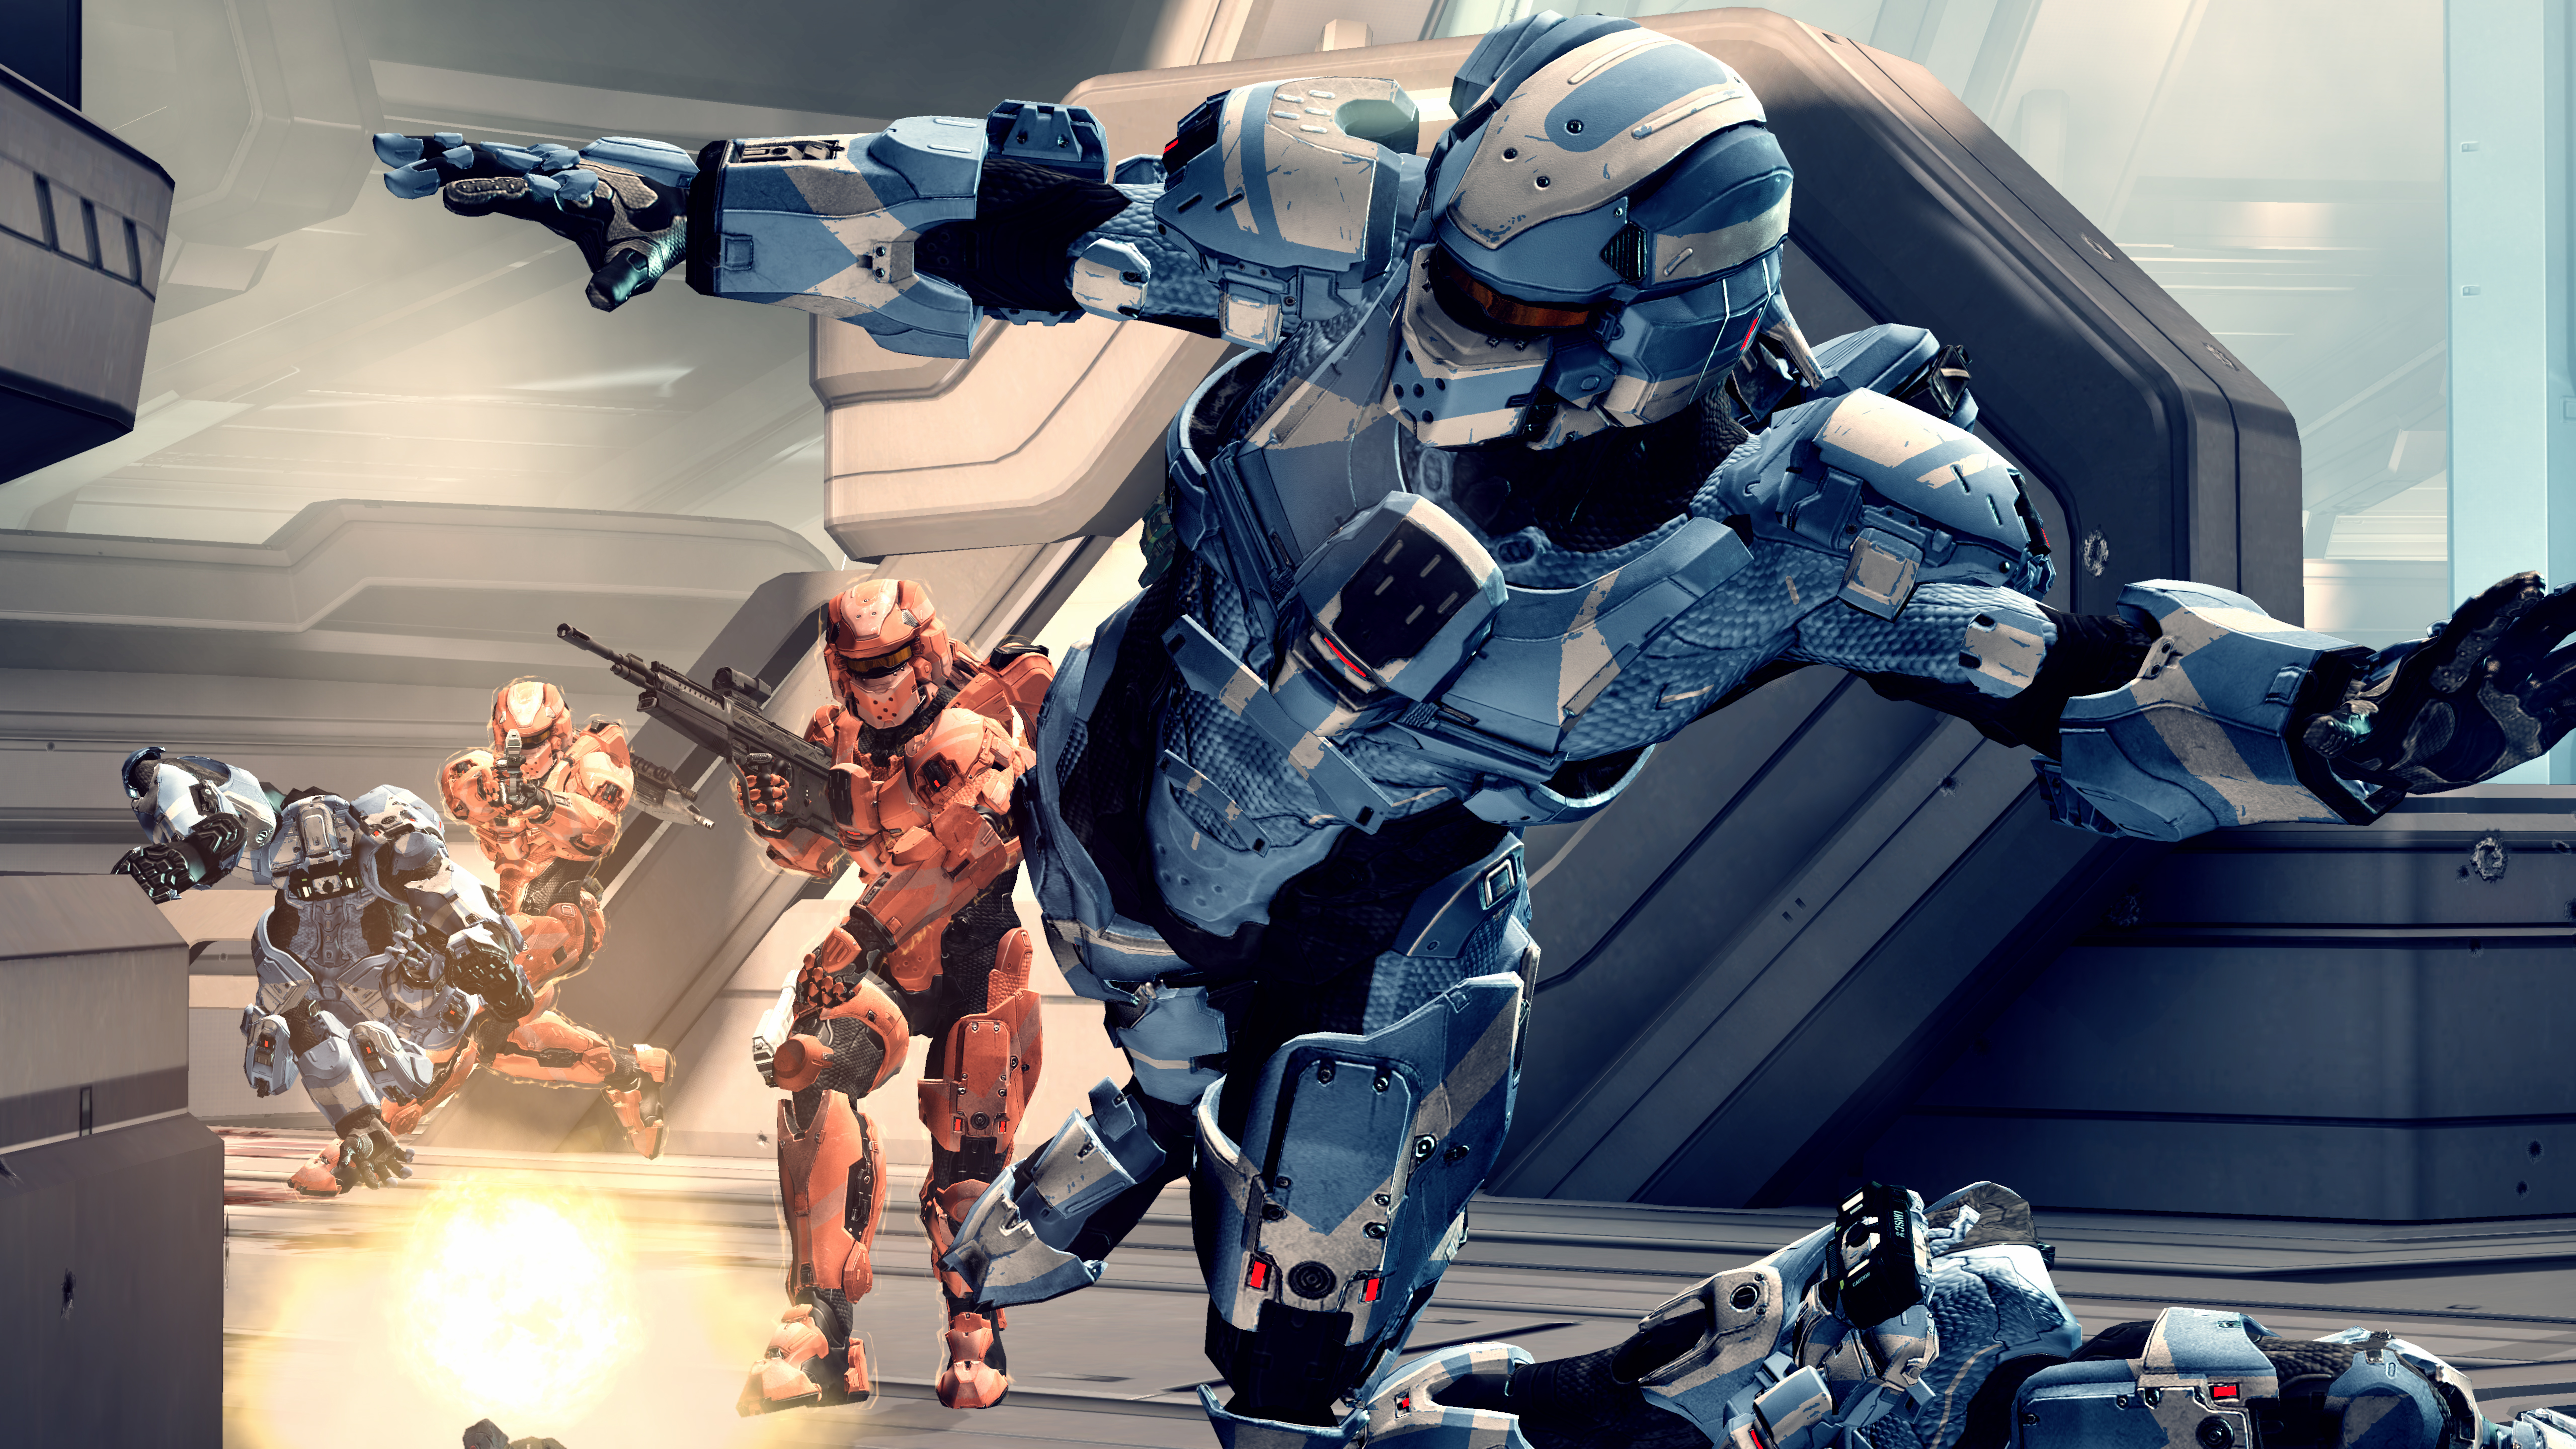 How to get matchmaking on halo 4